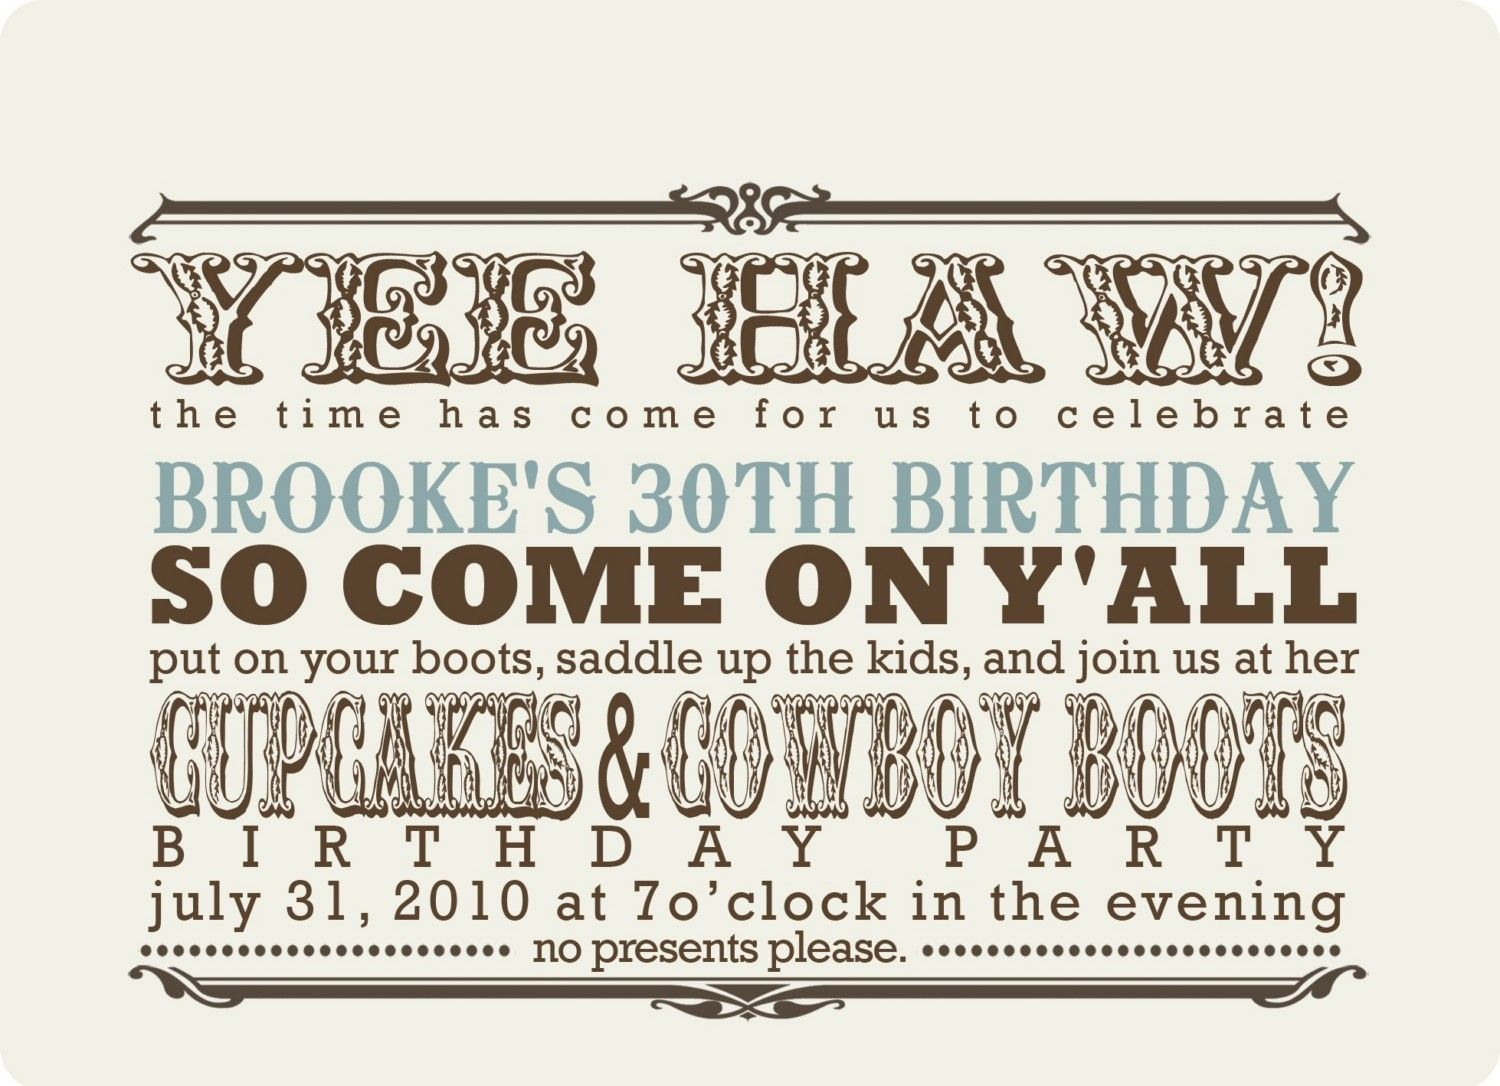 custom western party invitation cupcakes and cowboy boots – Western Themed Party Invitations